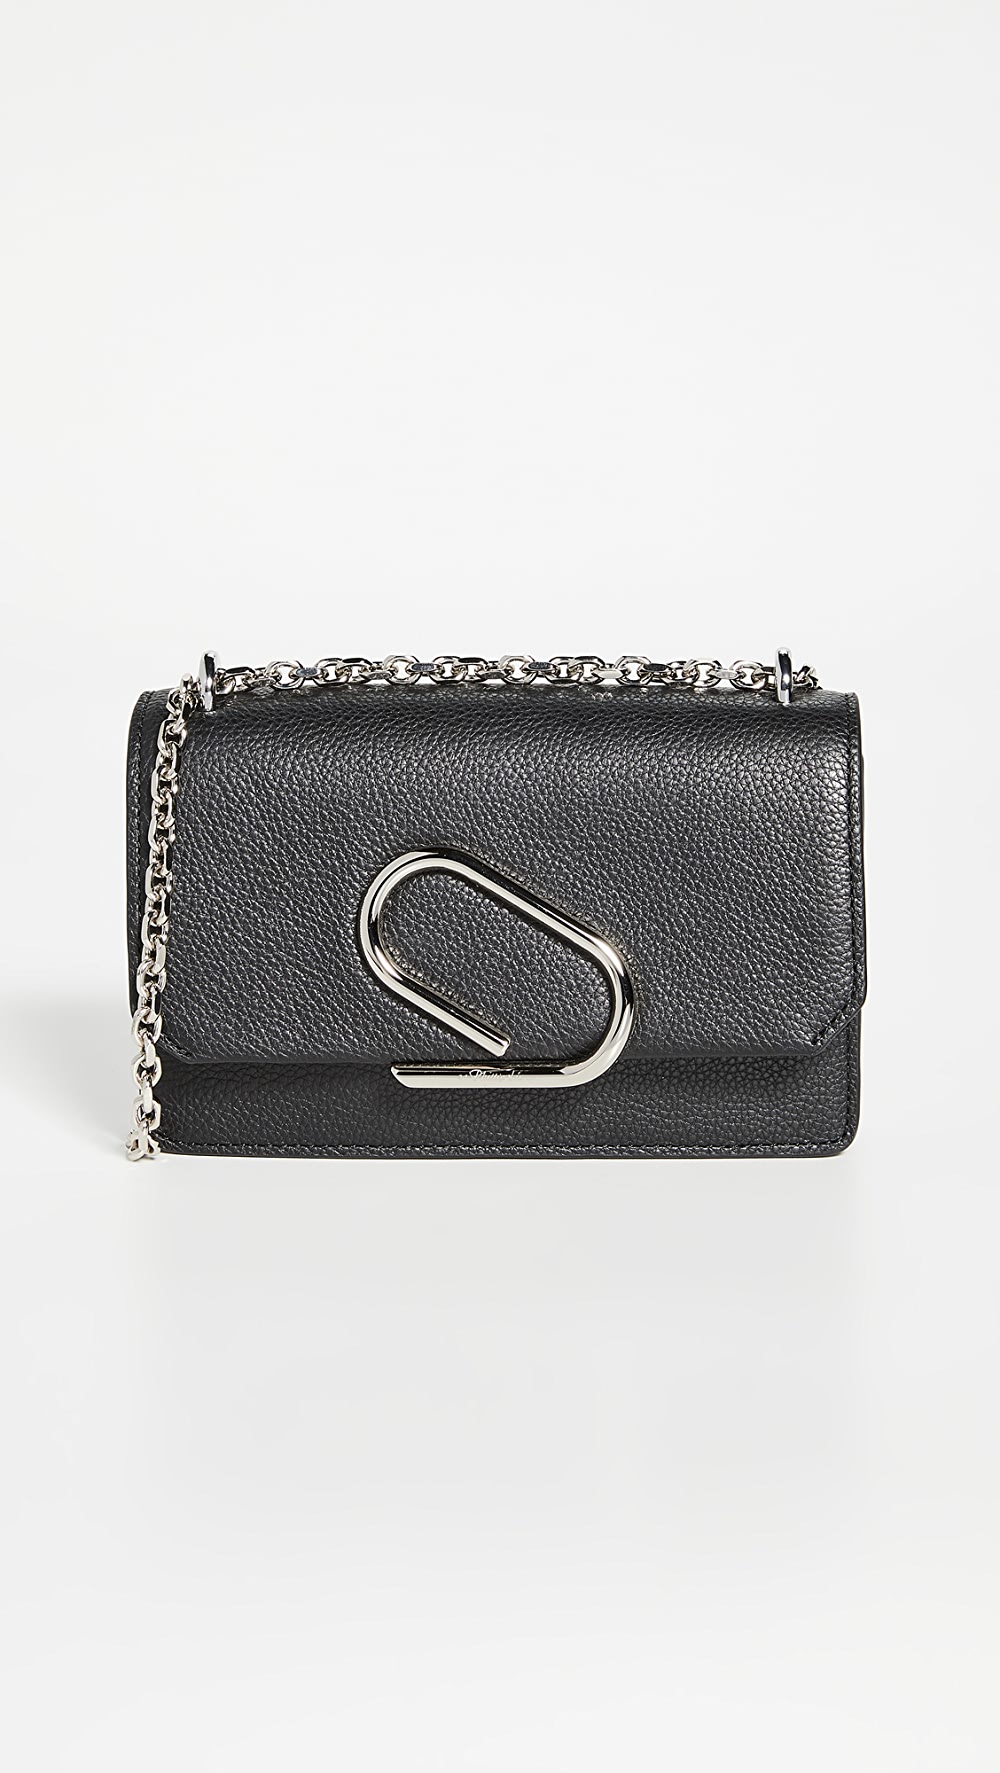 100% Quality 3.1 Phillip Lim - Alix Chain Clutch Sophisticated Technologies